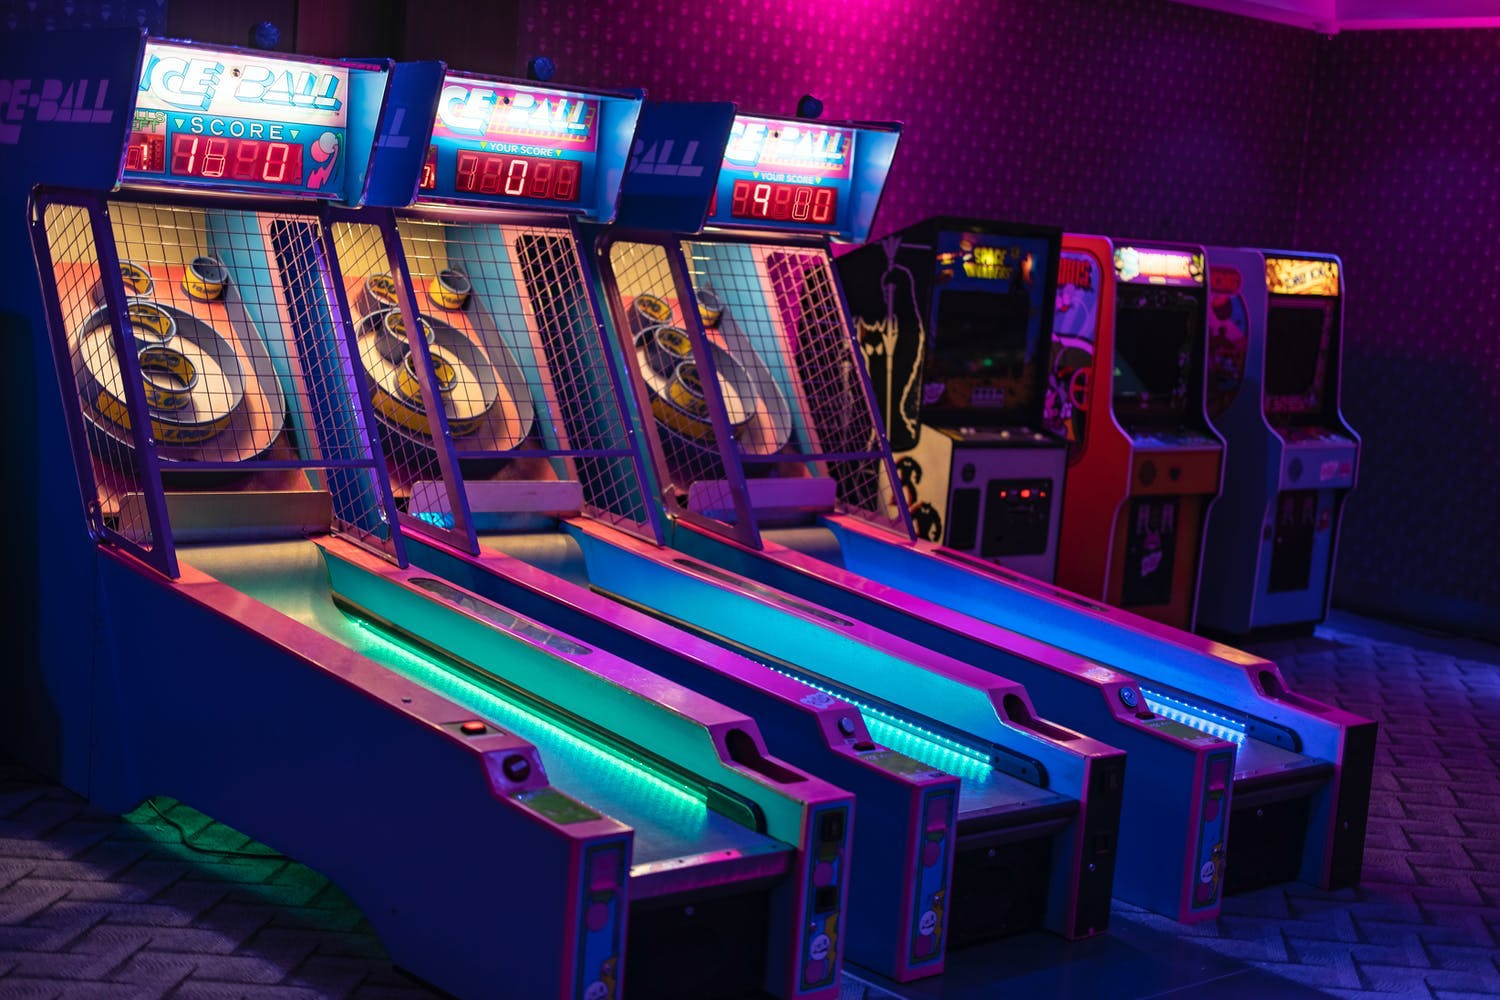 Neon skee ball arcade games at throwback 80s-themed corporate event | PartySlate